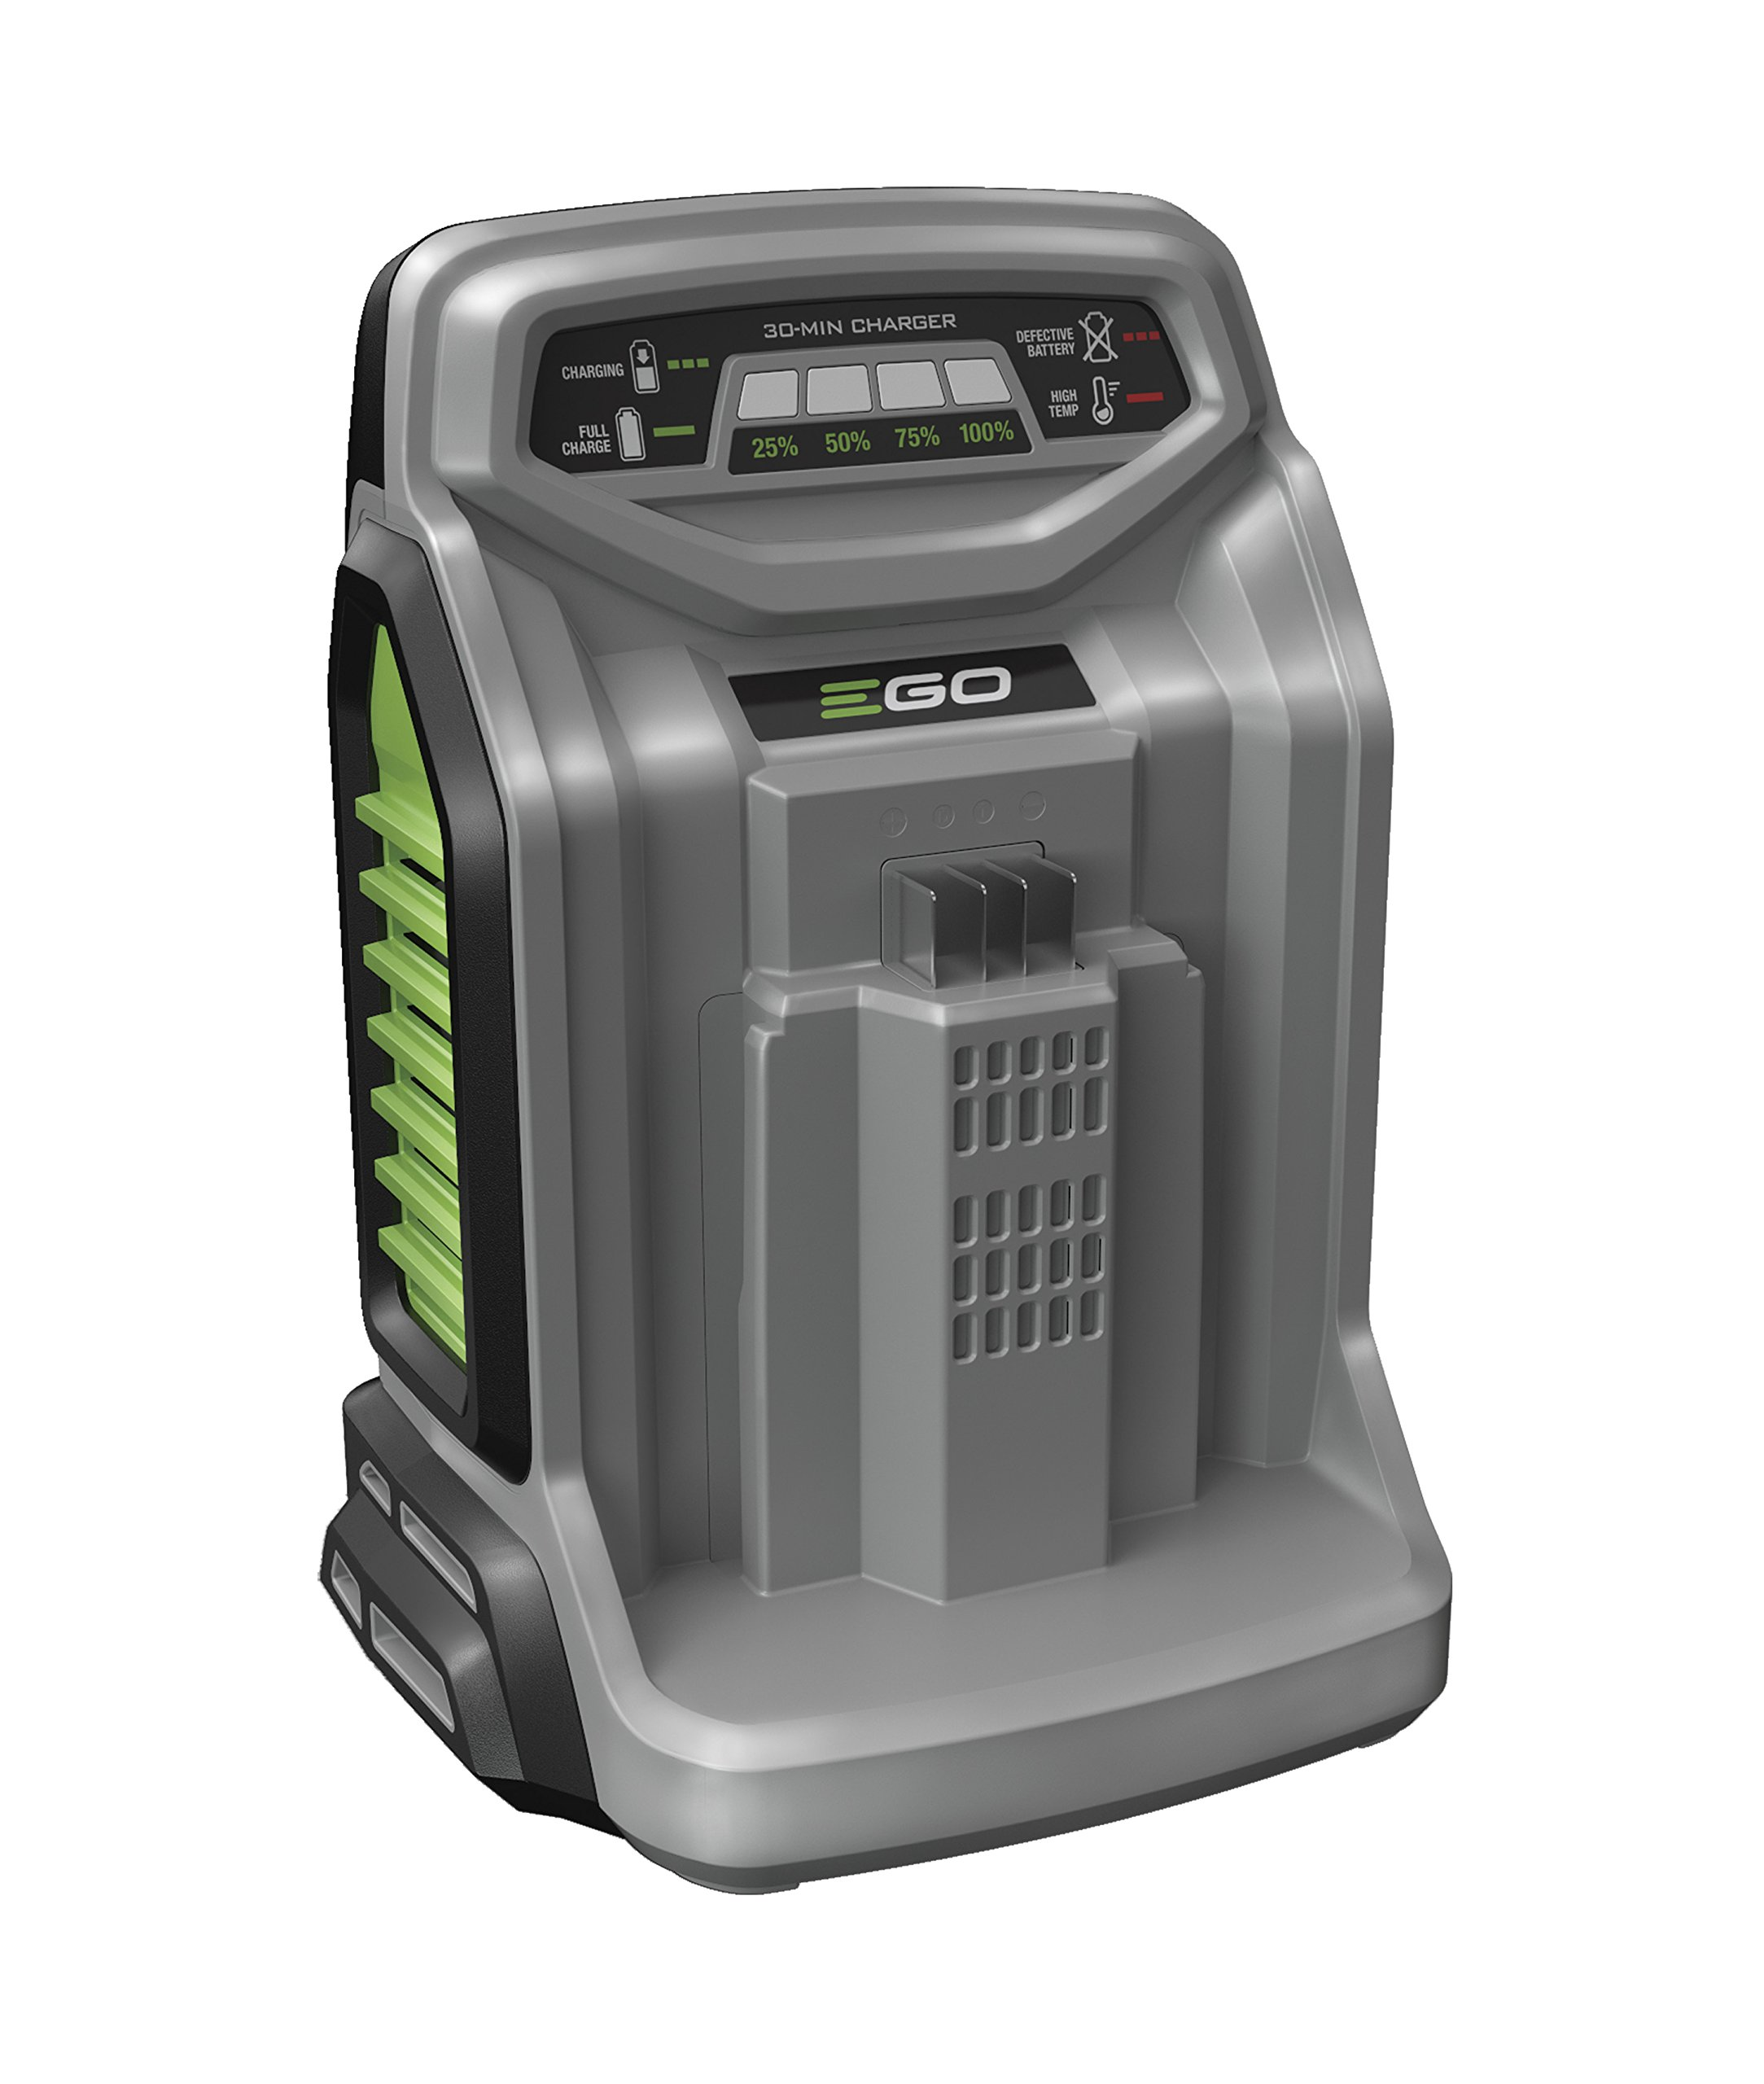 EGO Power+ 56-Volt Lithium-ion Rapid Charger for EGO Power+ Equipment